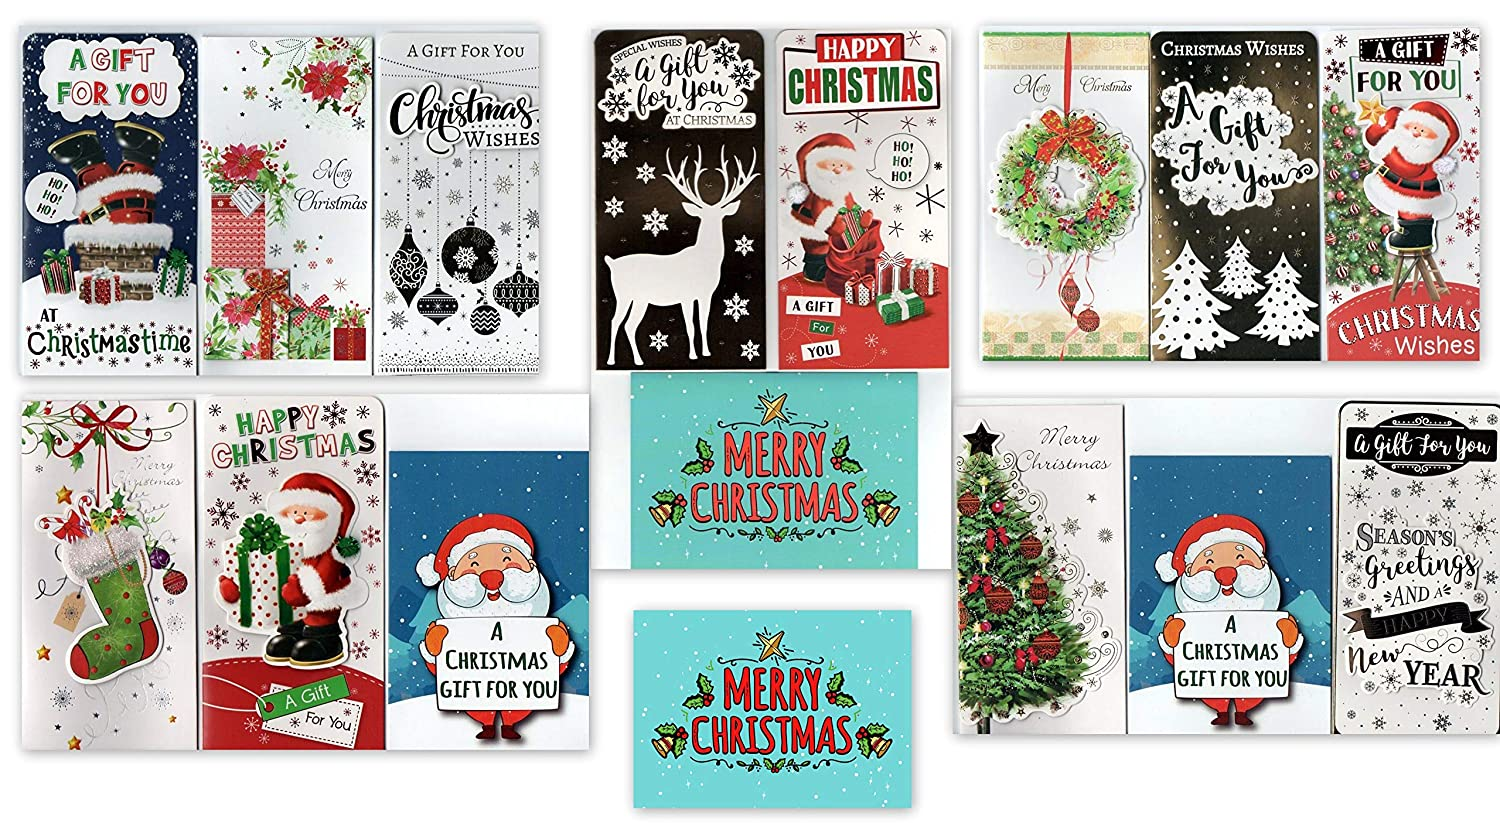 18 Items: Assorted Exclusive Greetingles Christmas Cards and 3D Money Wallets